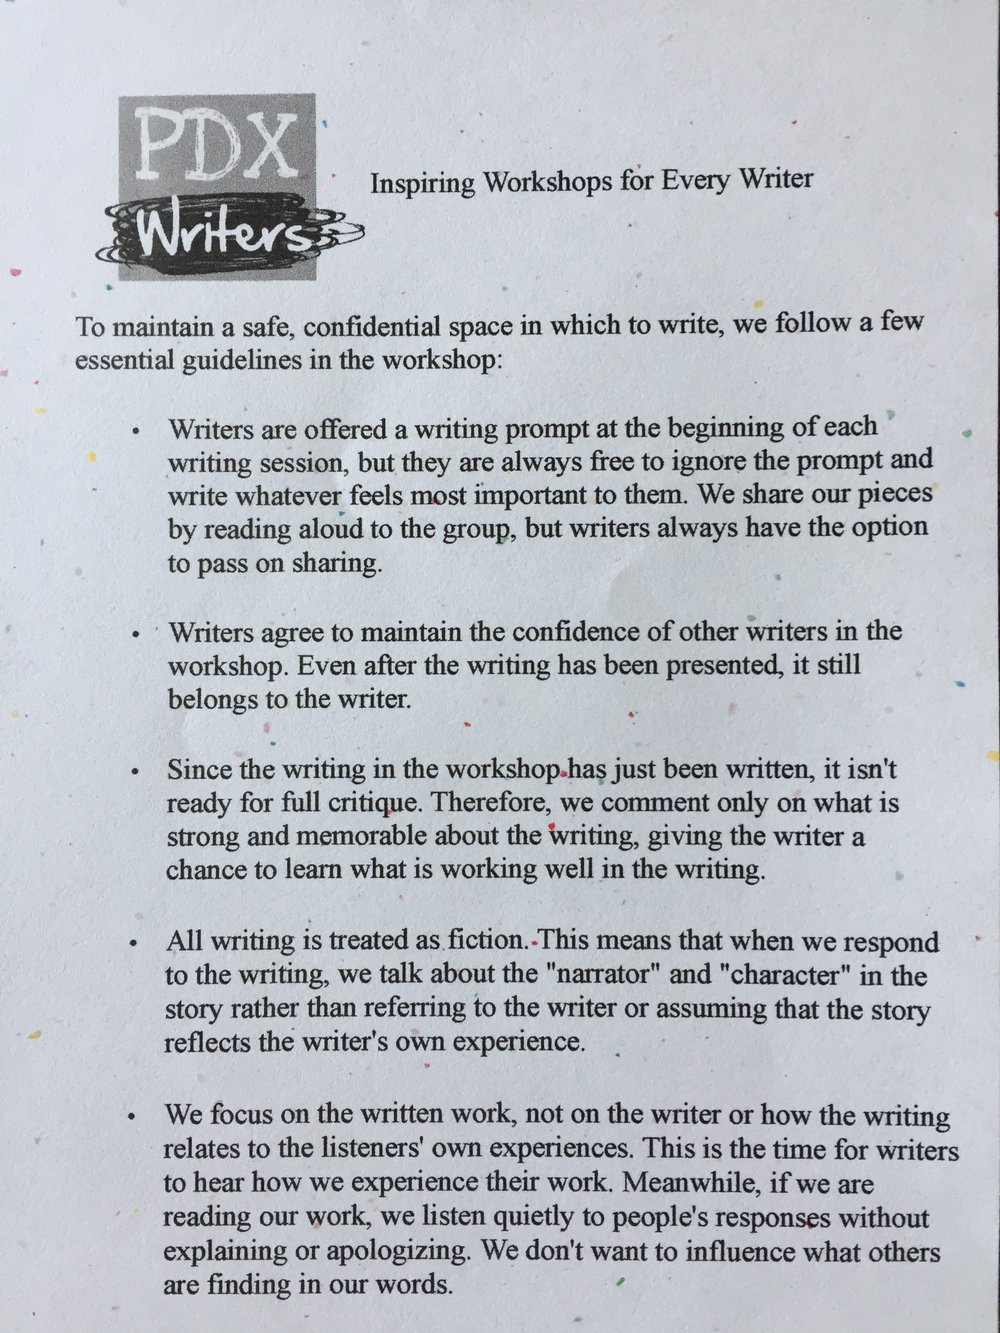 PDX Writers workshop guidelines